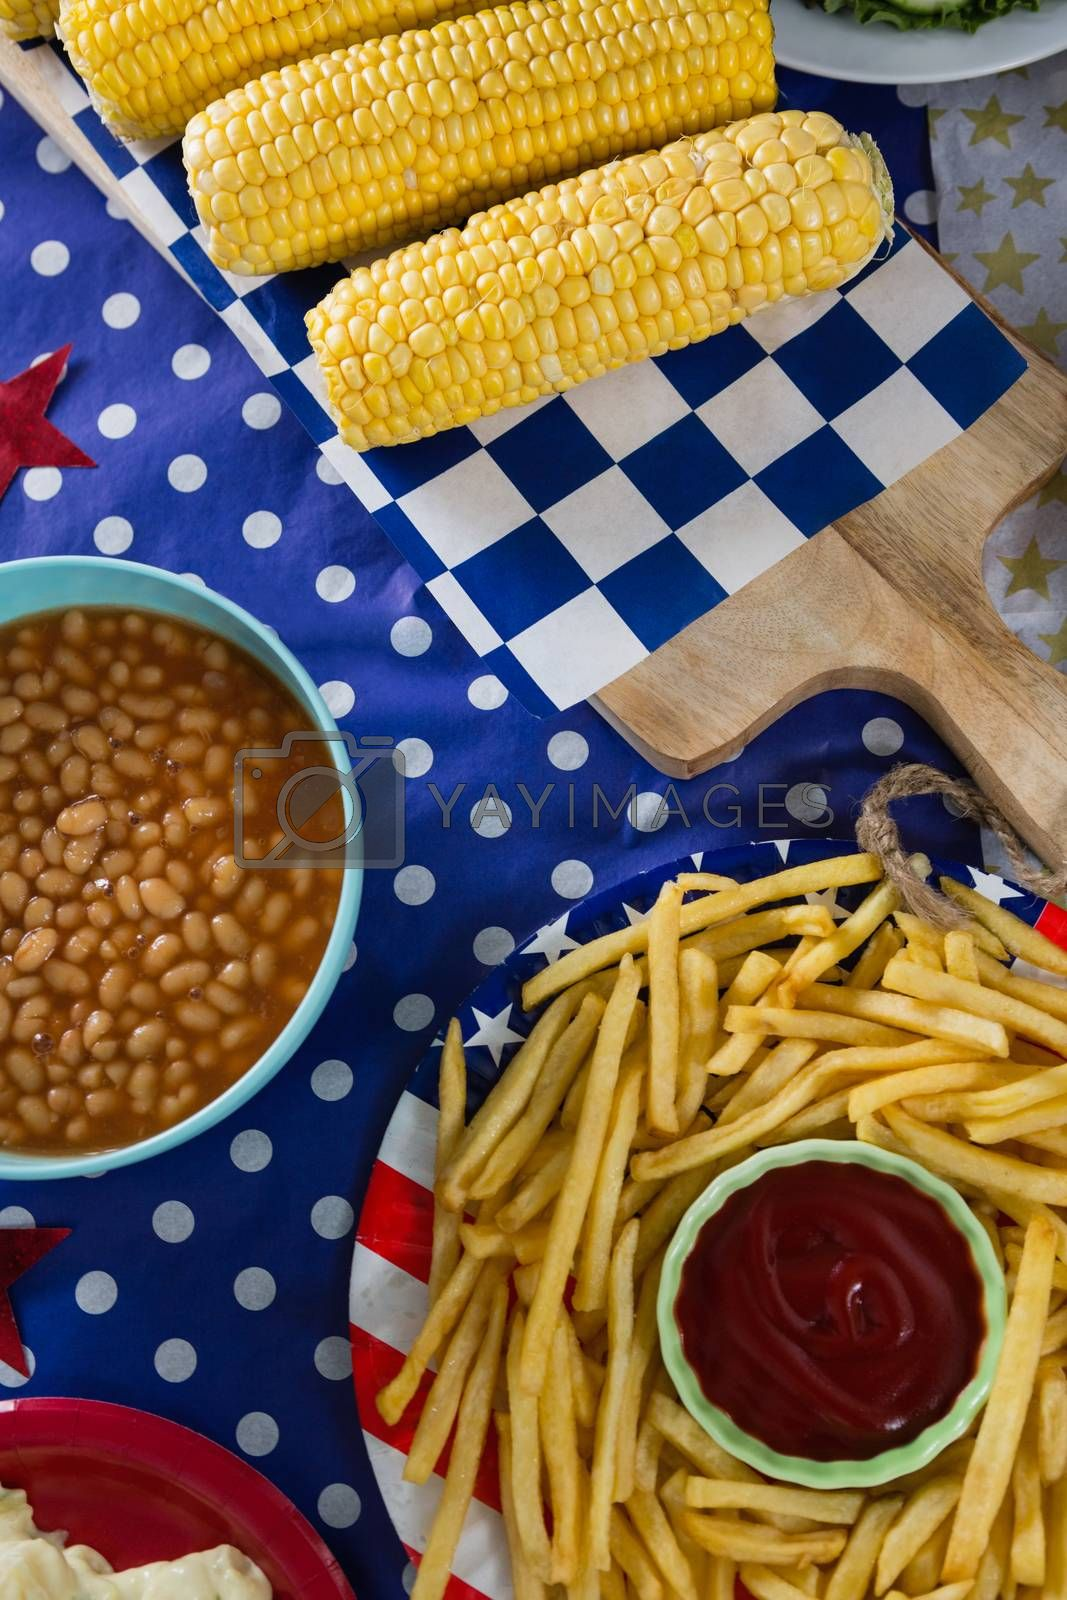 Royalty free image of French fries and corn cob on wooden table with 4th july theme by Wavebreakmedia